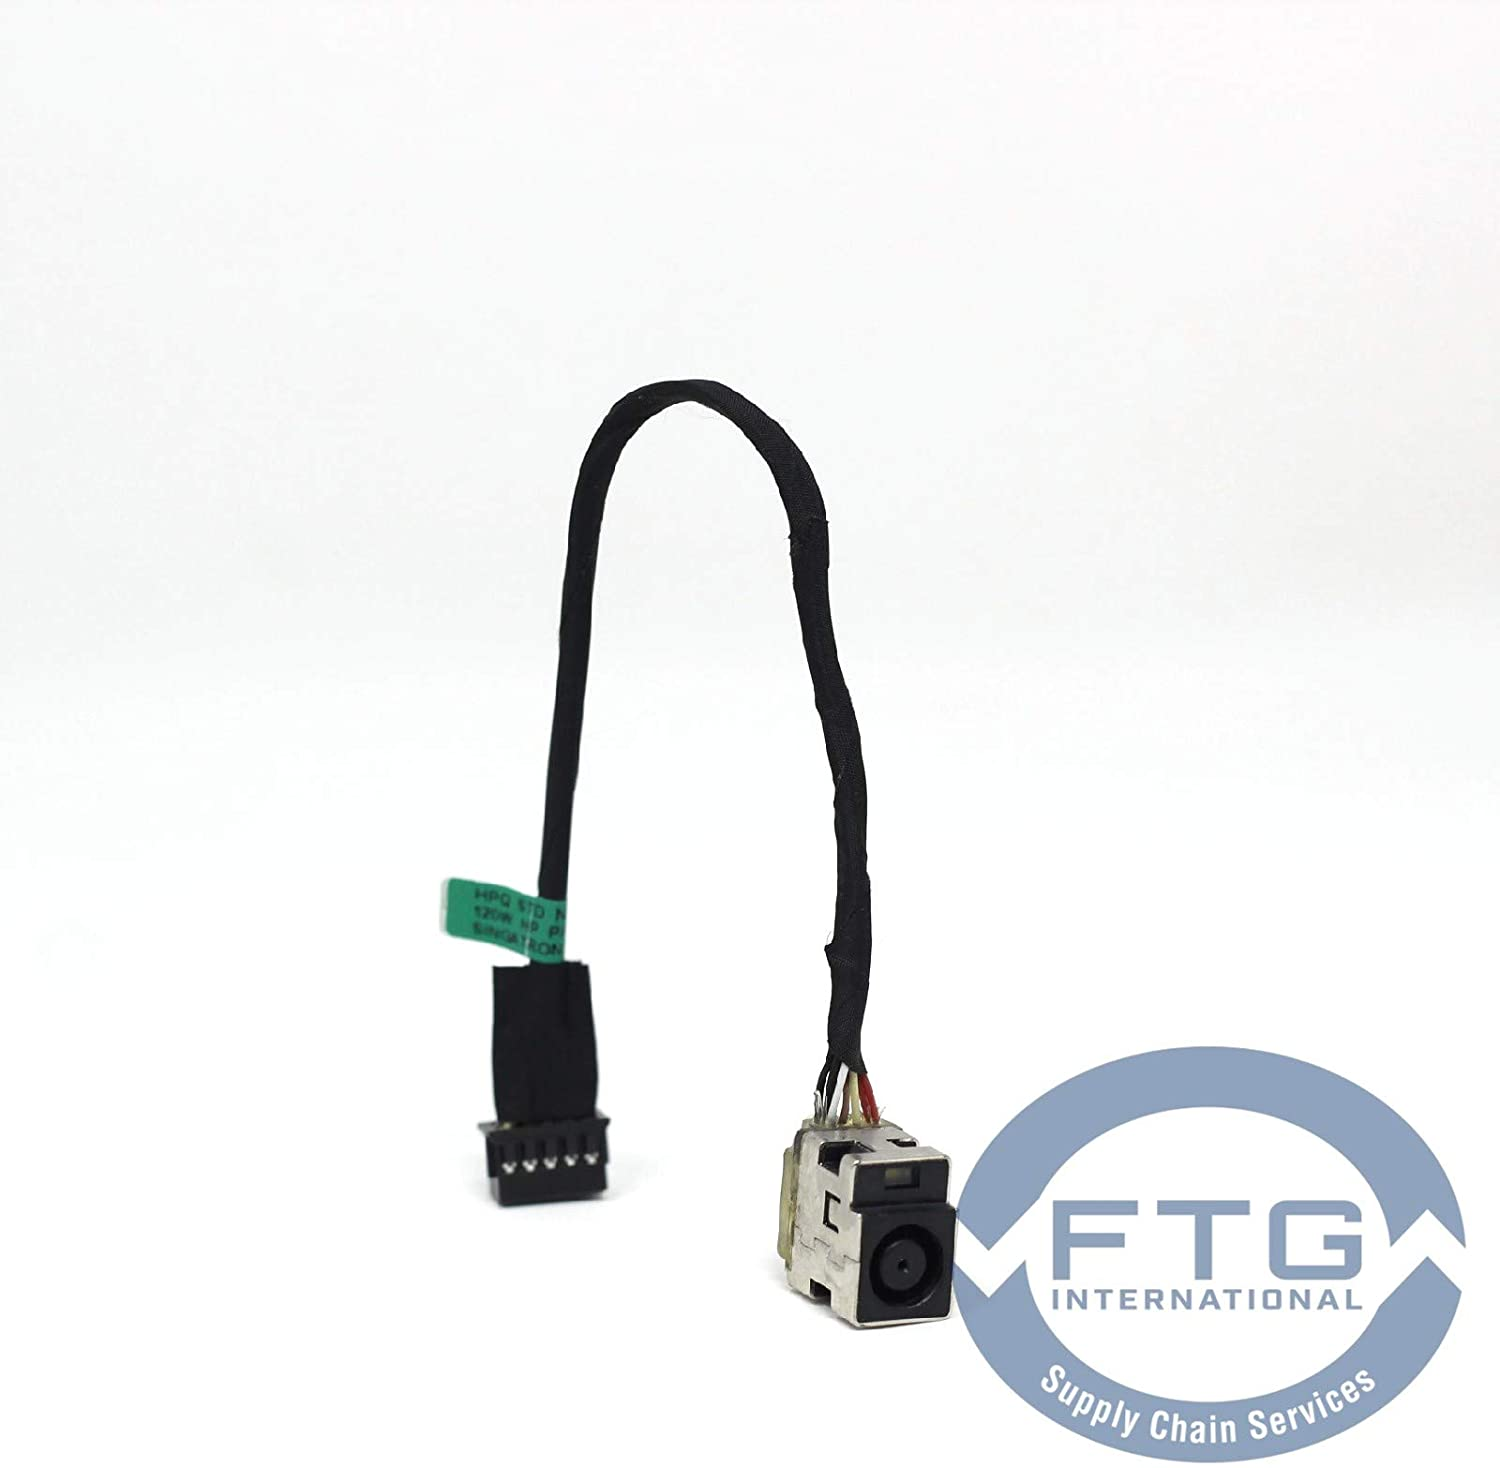 682059-001//685526-001 Cable DC-in Power Connector 120W